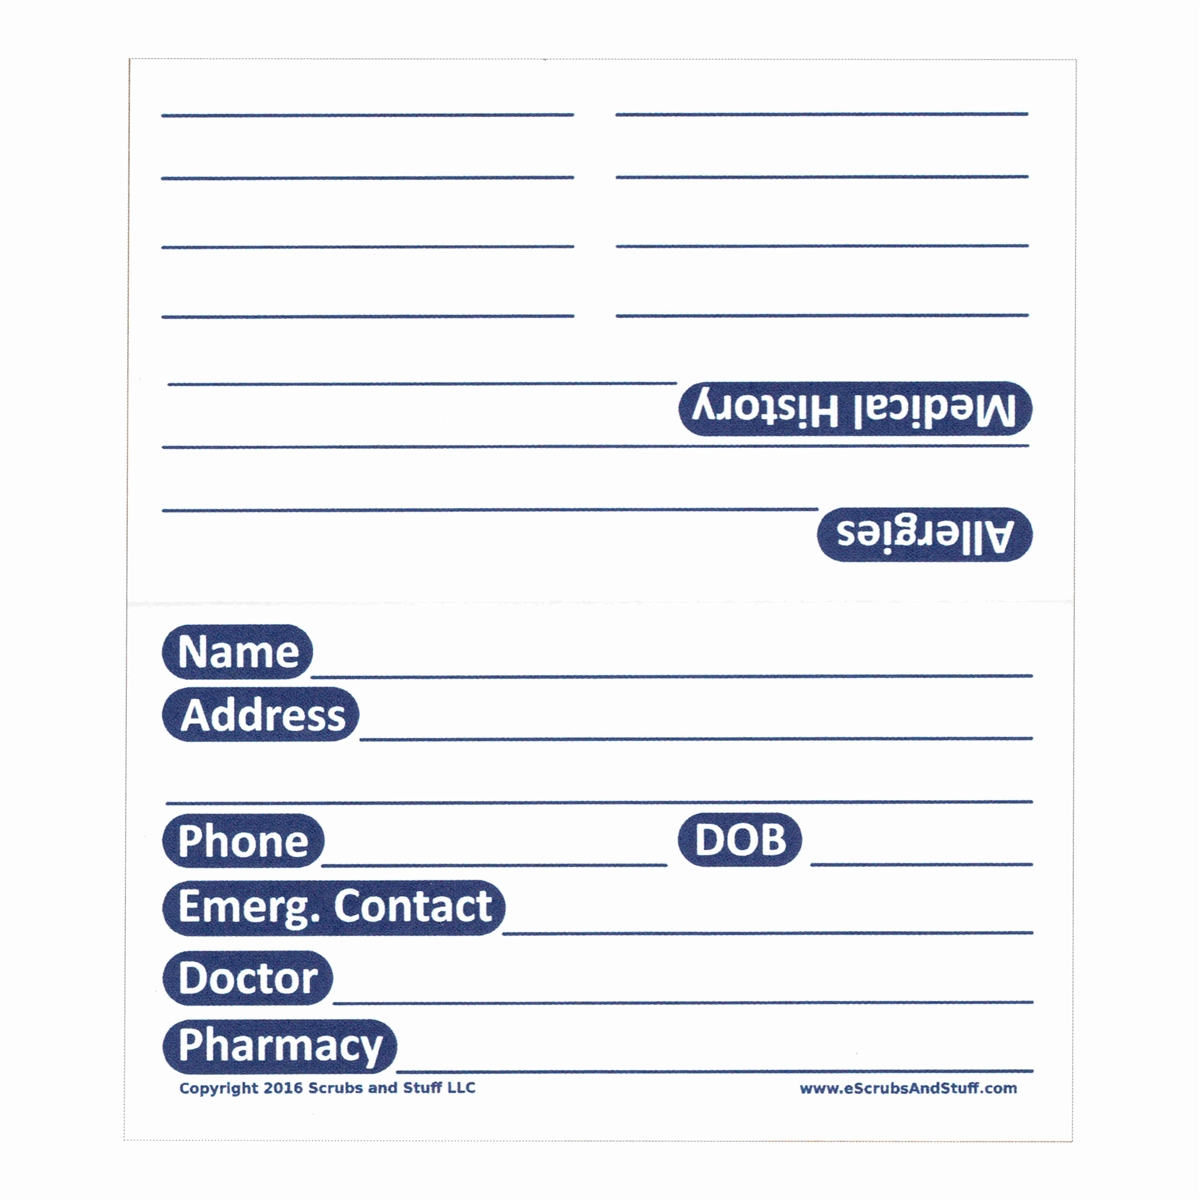 volusion templates for sale - patient medication and history card pack of 25